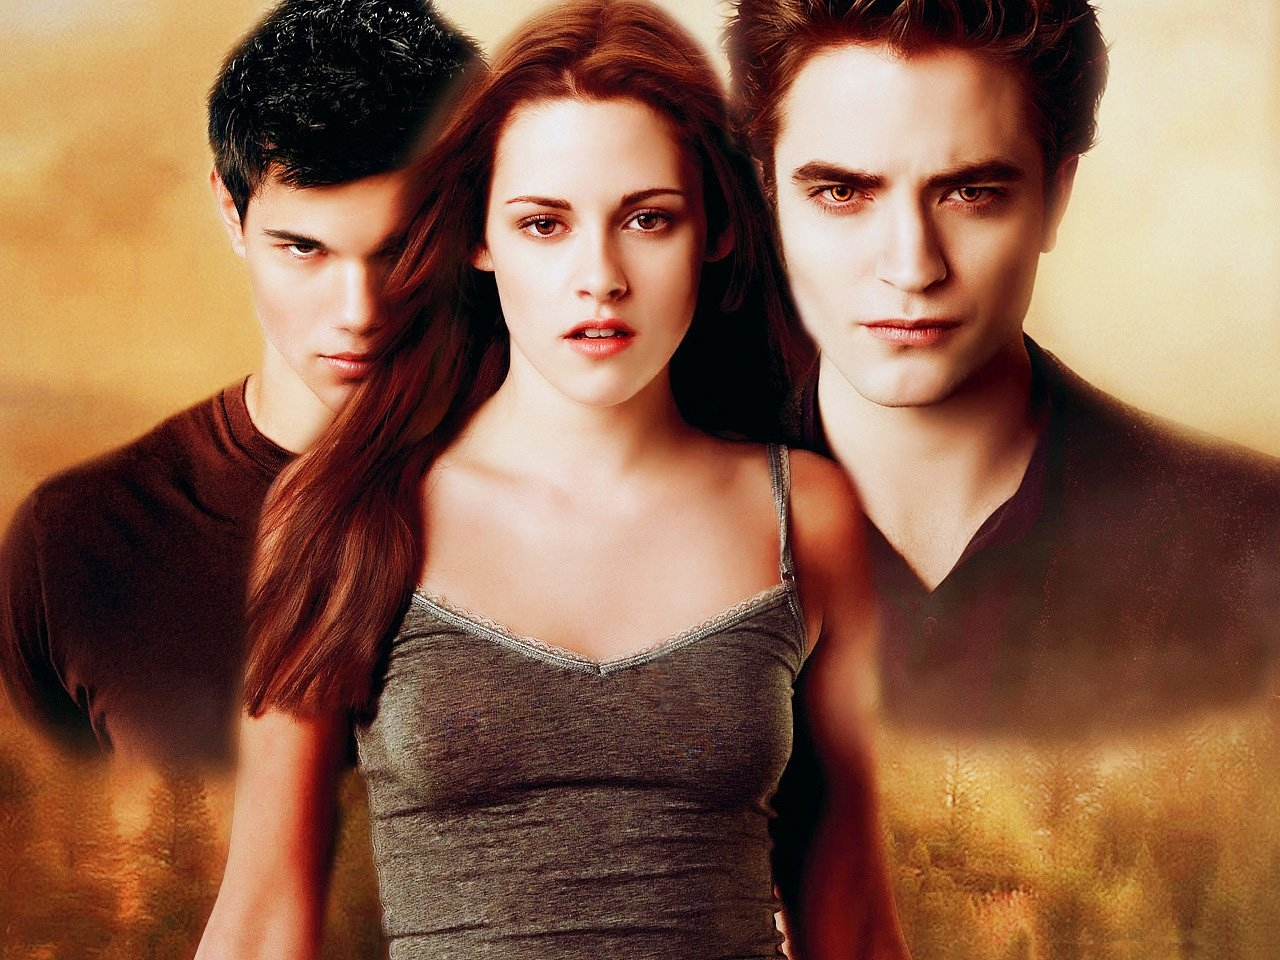 New-Moon-twilight-series-8361131-1280-960 - сумреки обои